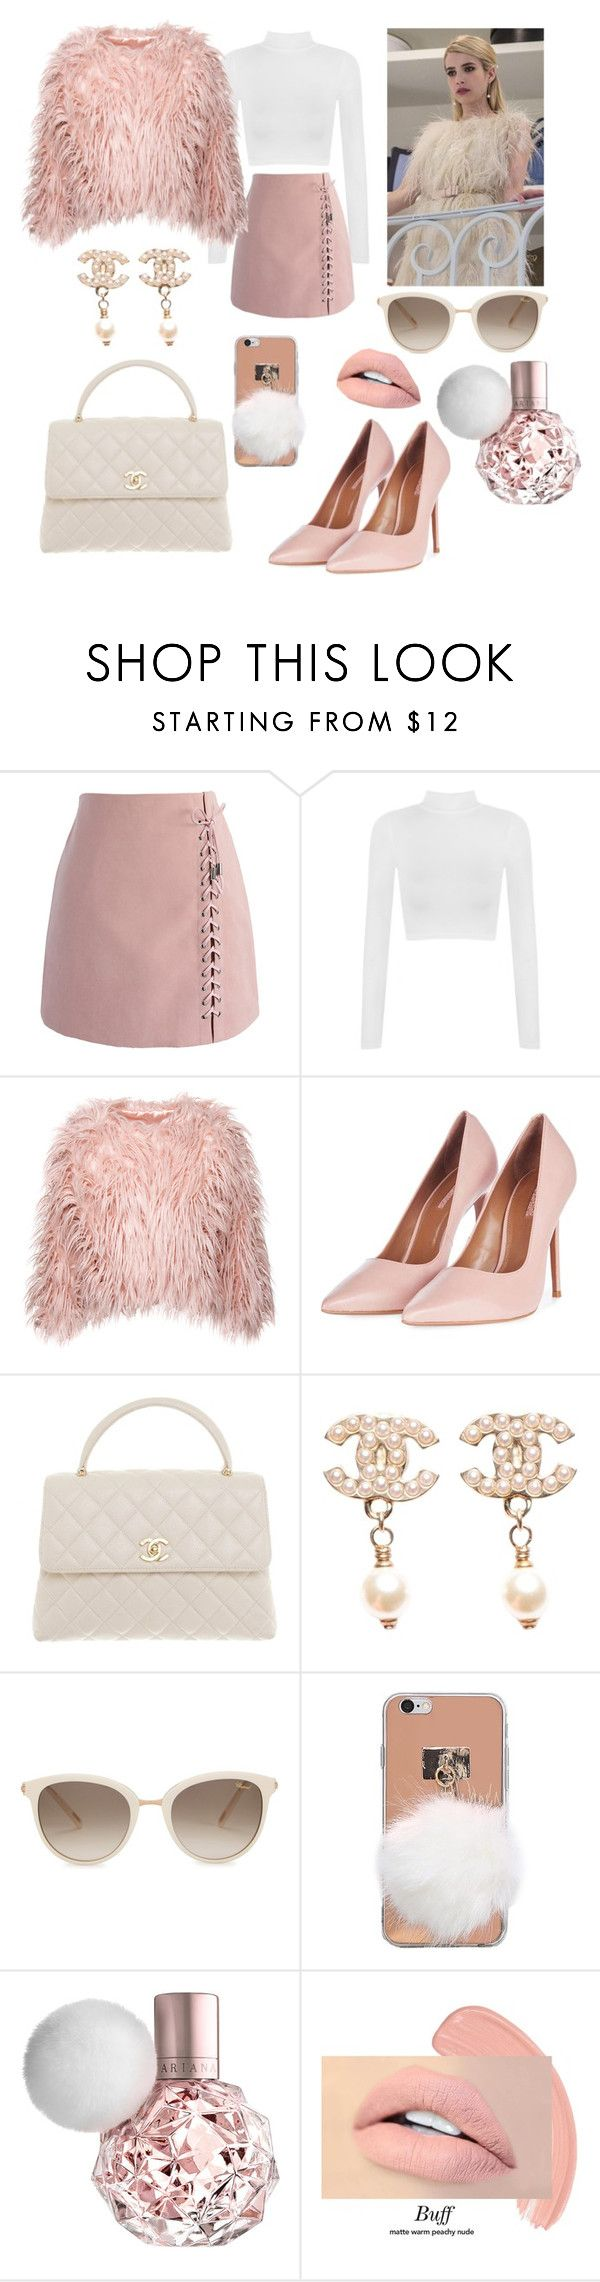 """Chanel Oberin styles"" by alexia-engelhardt on Polyvore featuring Chanel, Chicwish, WearAll, Topshop and Chopard"